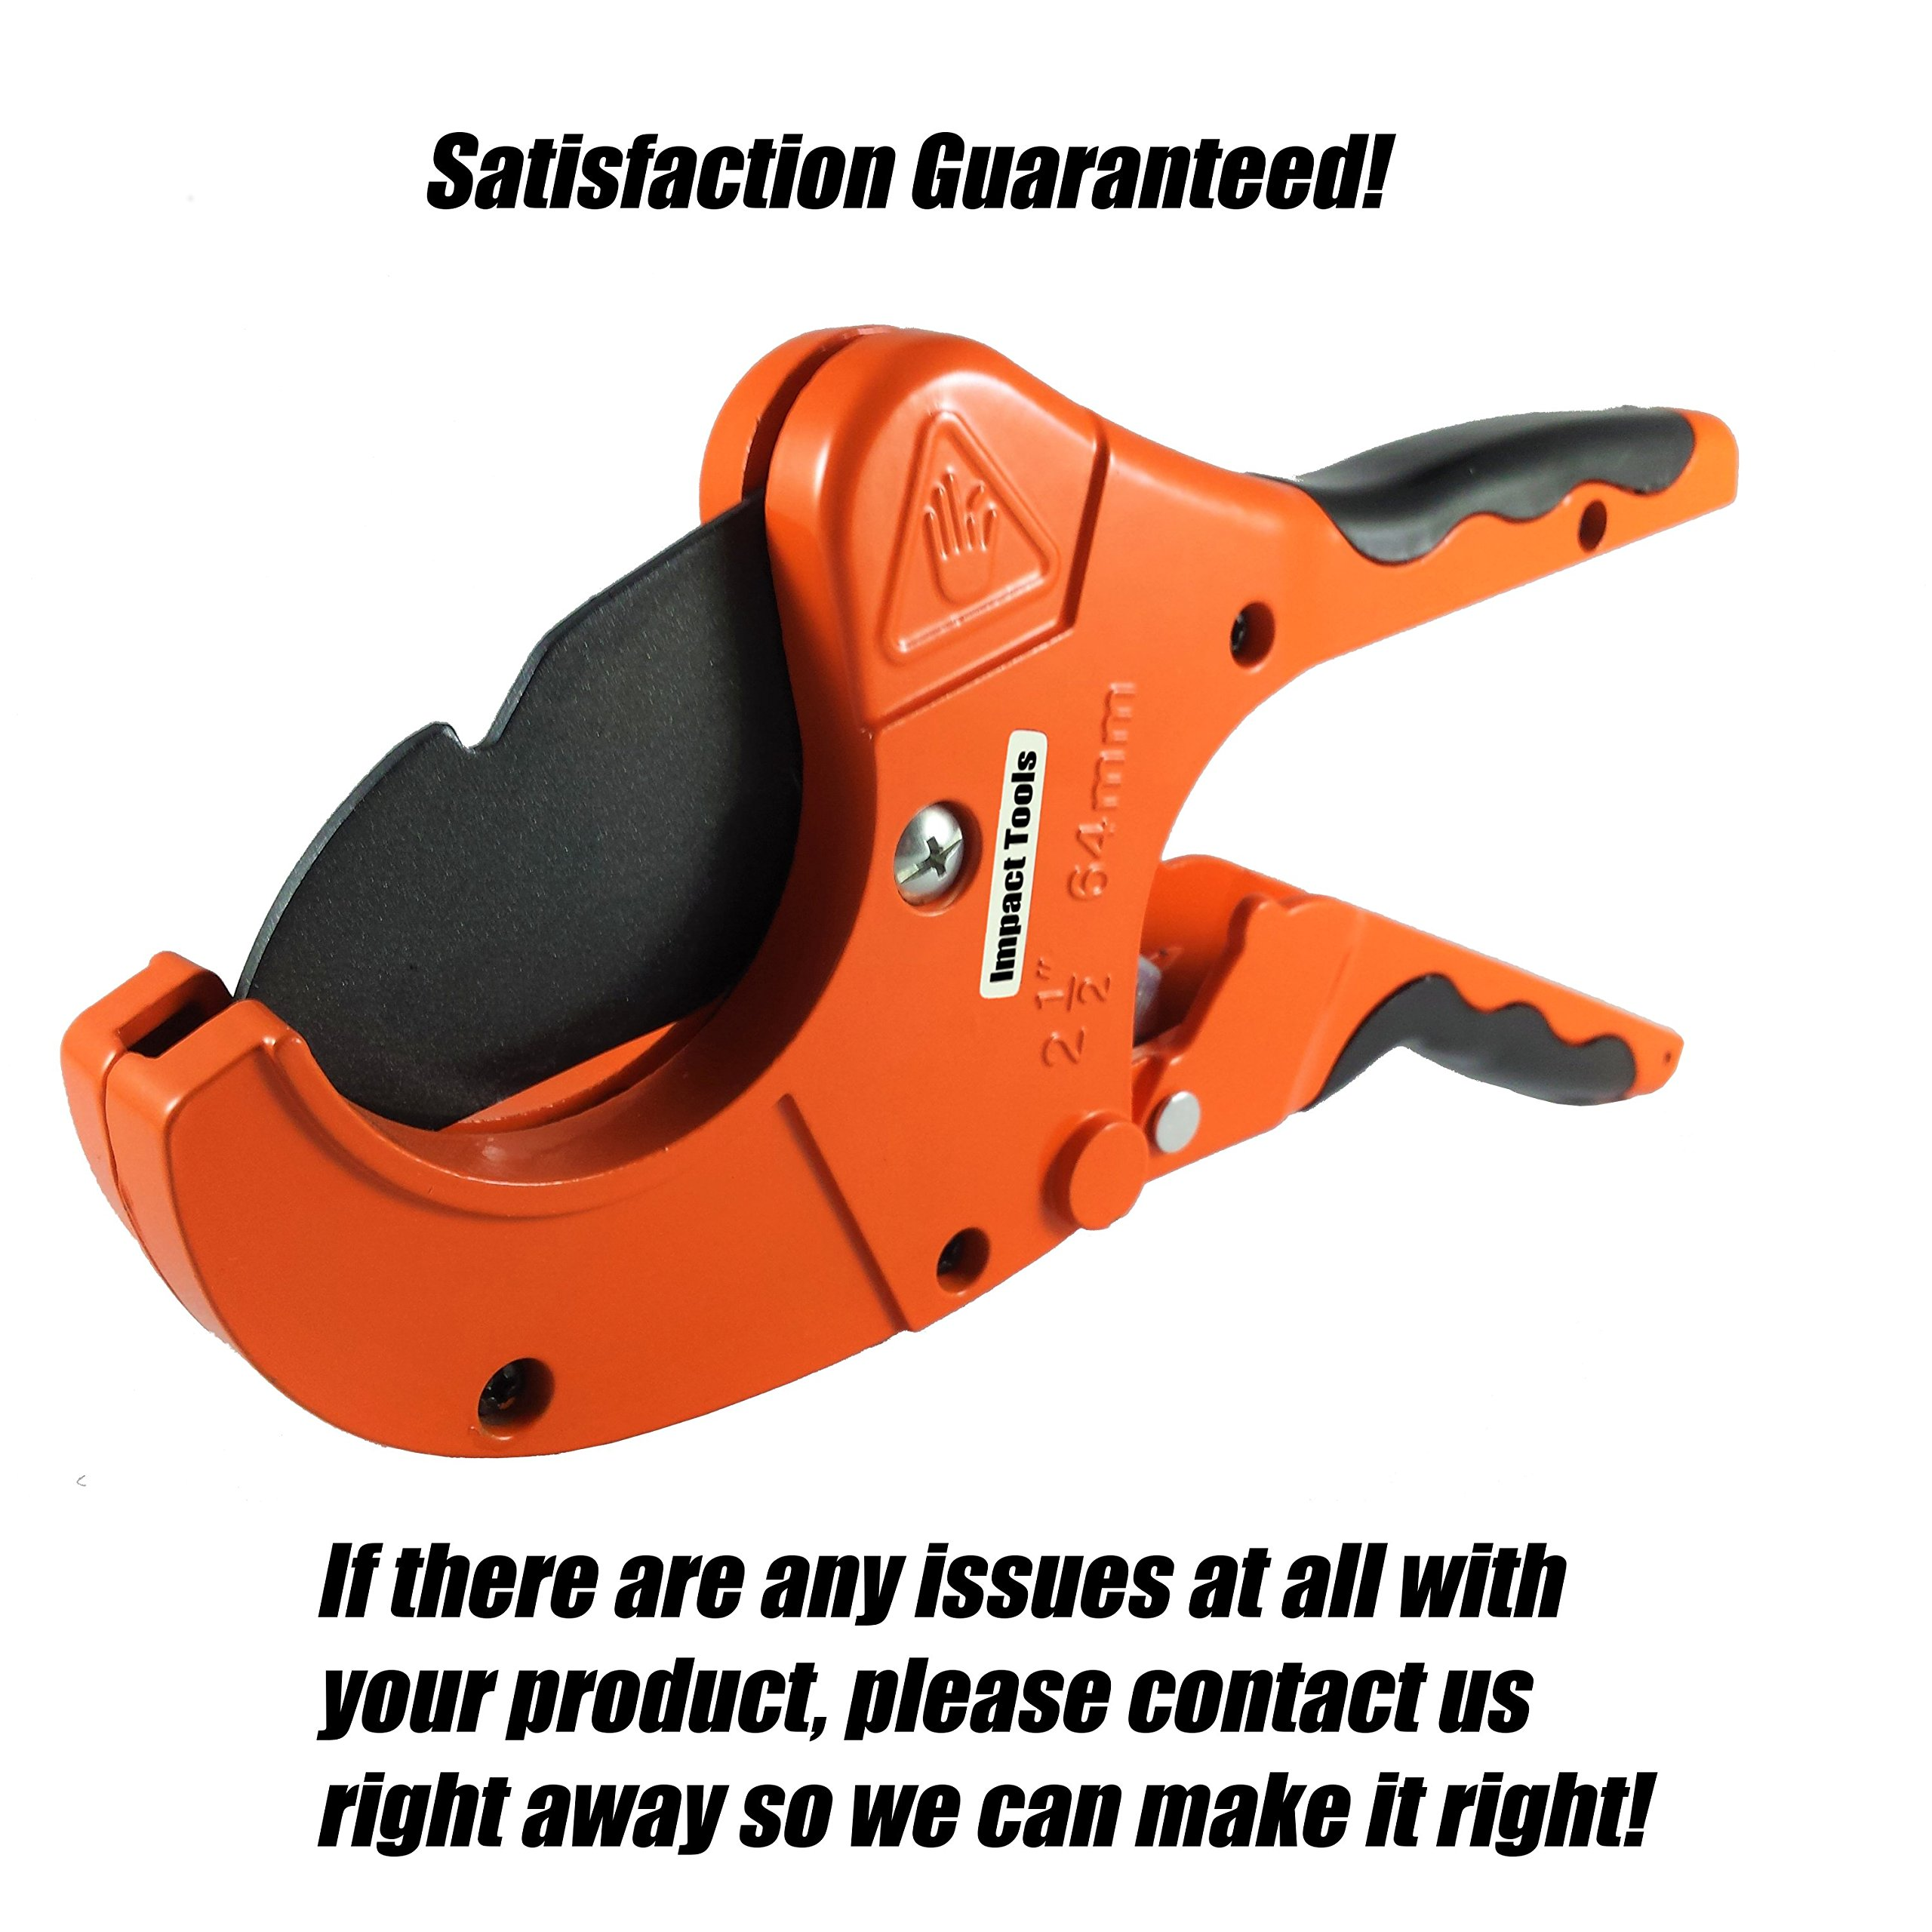 PVC Pipe Cutter | Cuts up to 2.5 Inch Diameter | One Handed Heavy Duty Ratchet Plastic Pipe and Tube Cutter Tool for PVC CPVC PEX PE PPR and more | Perfect for Plumbing and Irrigation Pipe by Impact Tools (Image #7)